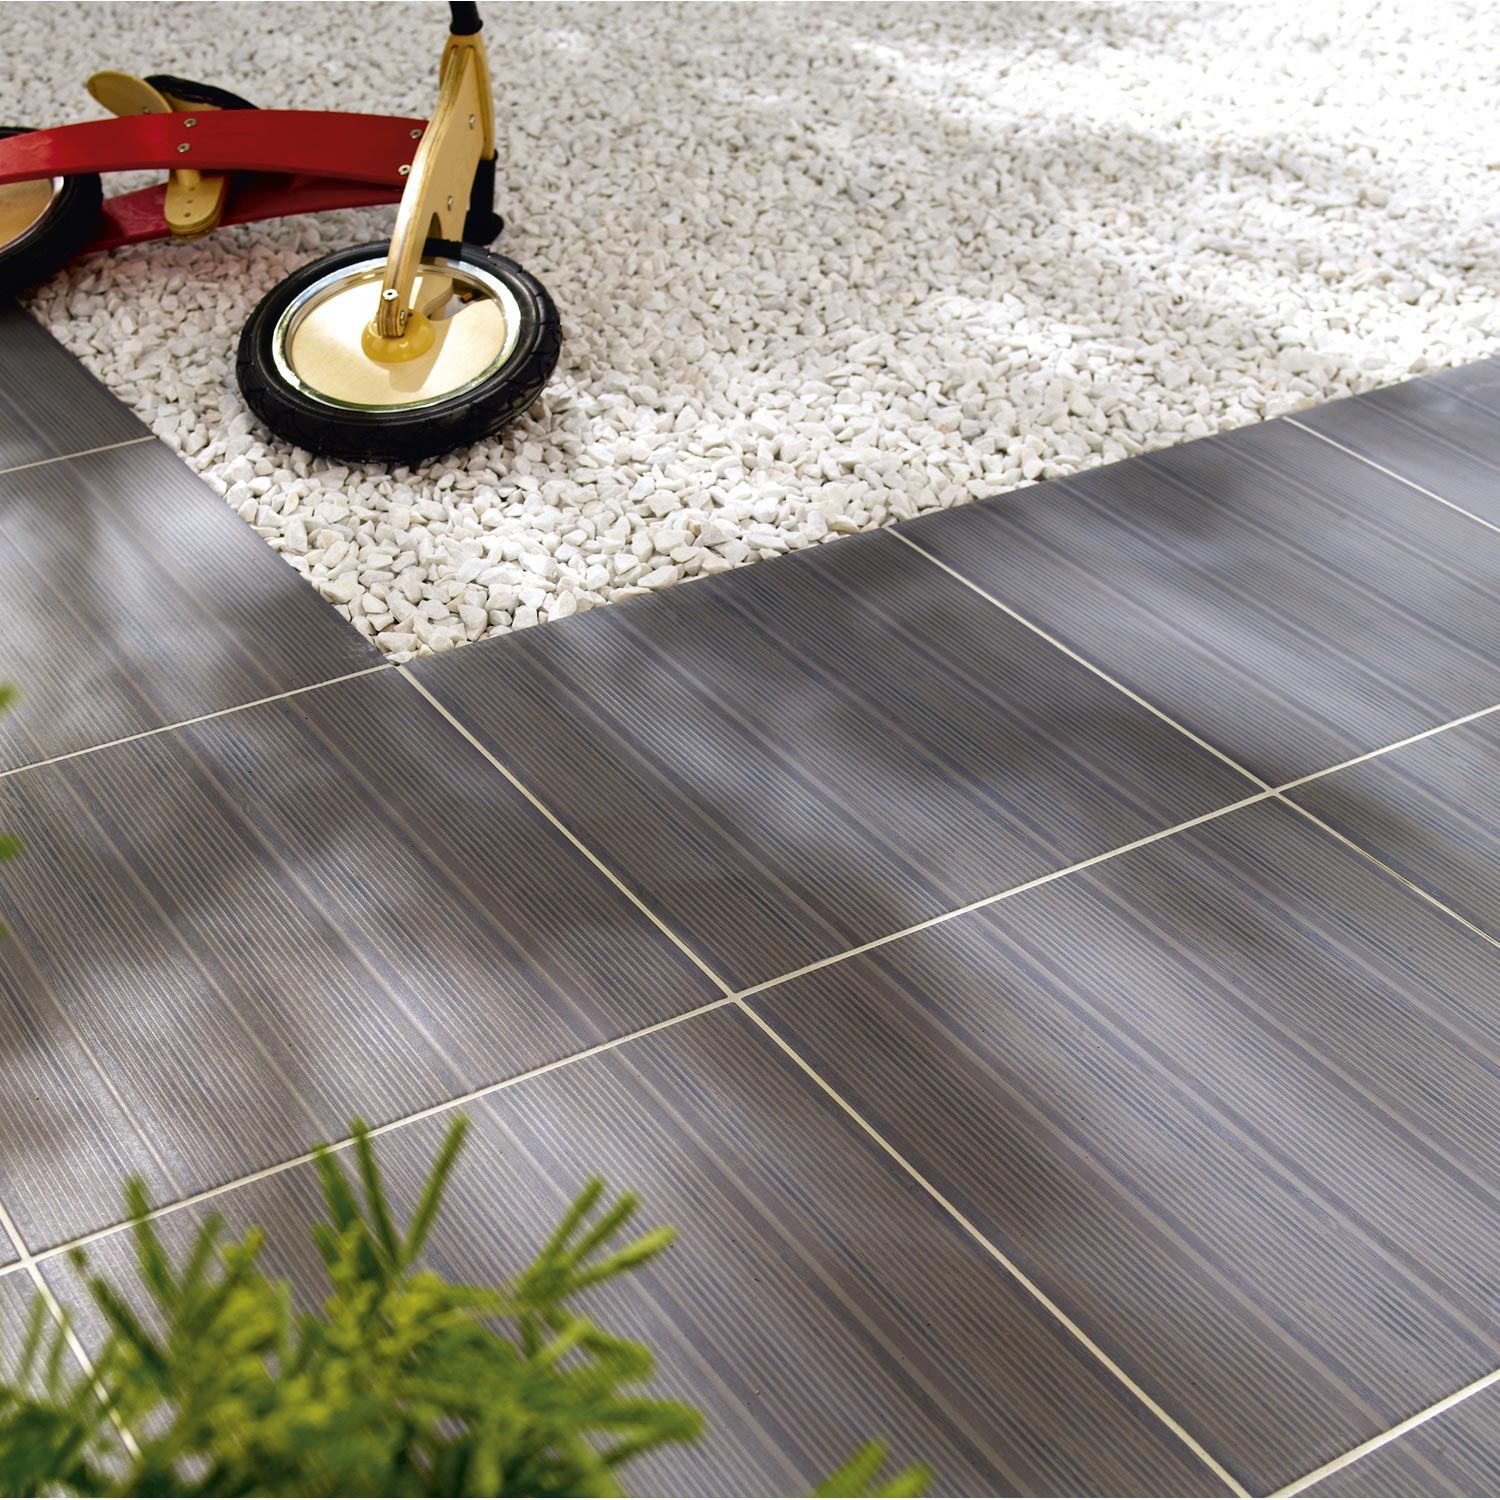 Carrelage gris anthracite leroy merlin for Carrelage gres cerame 45x45